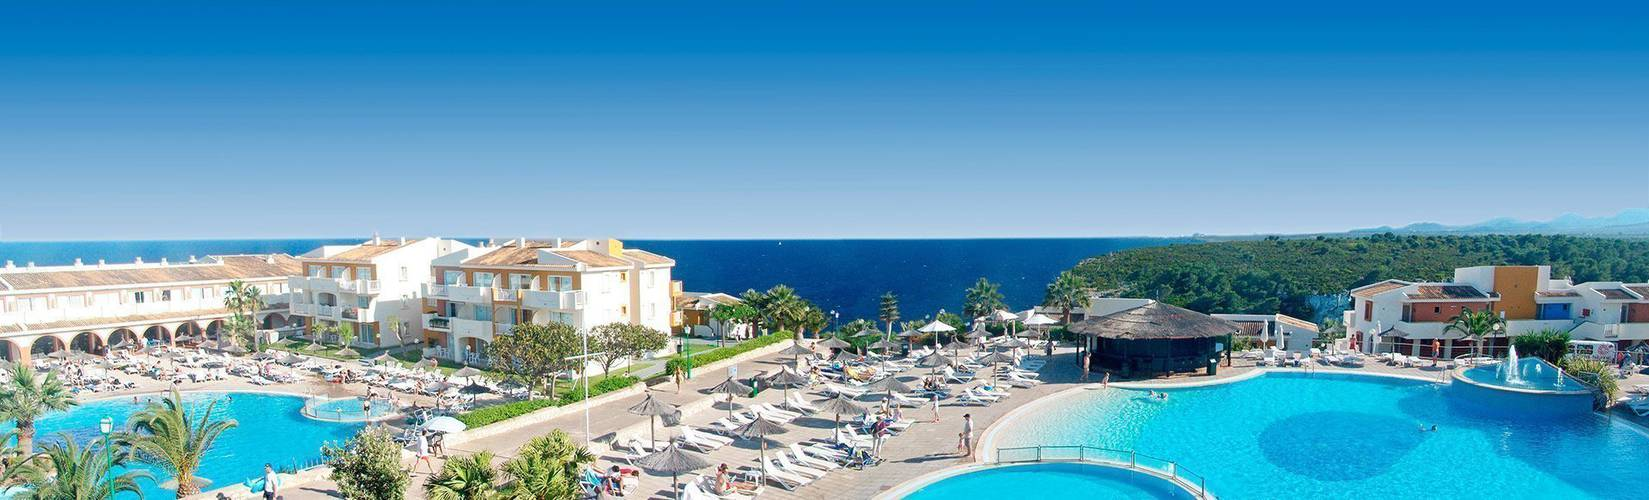 Outdoor swimming pool Blau Punta Reina Resort Majorca